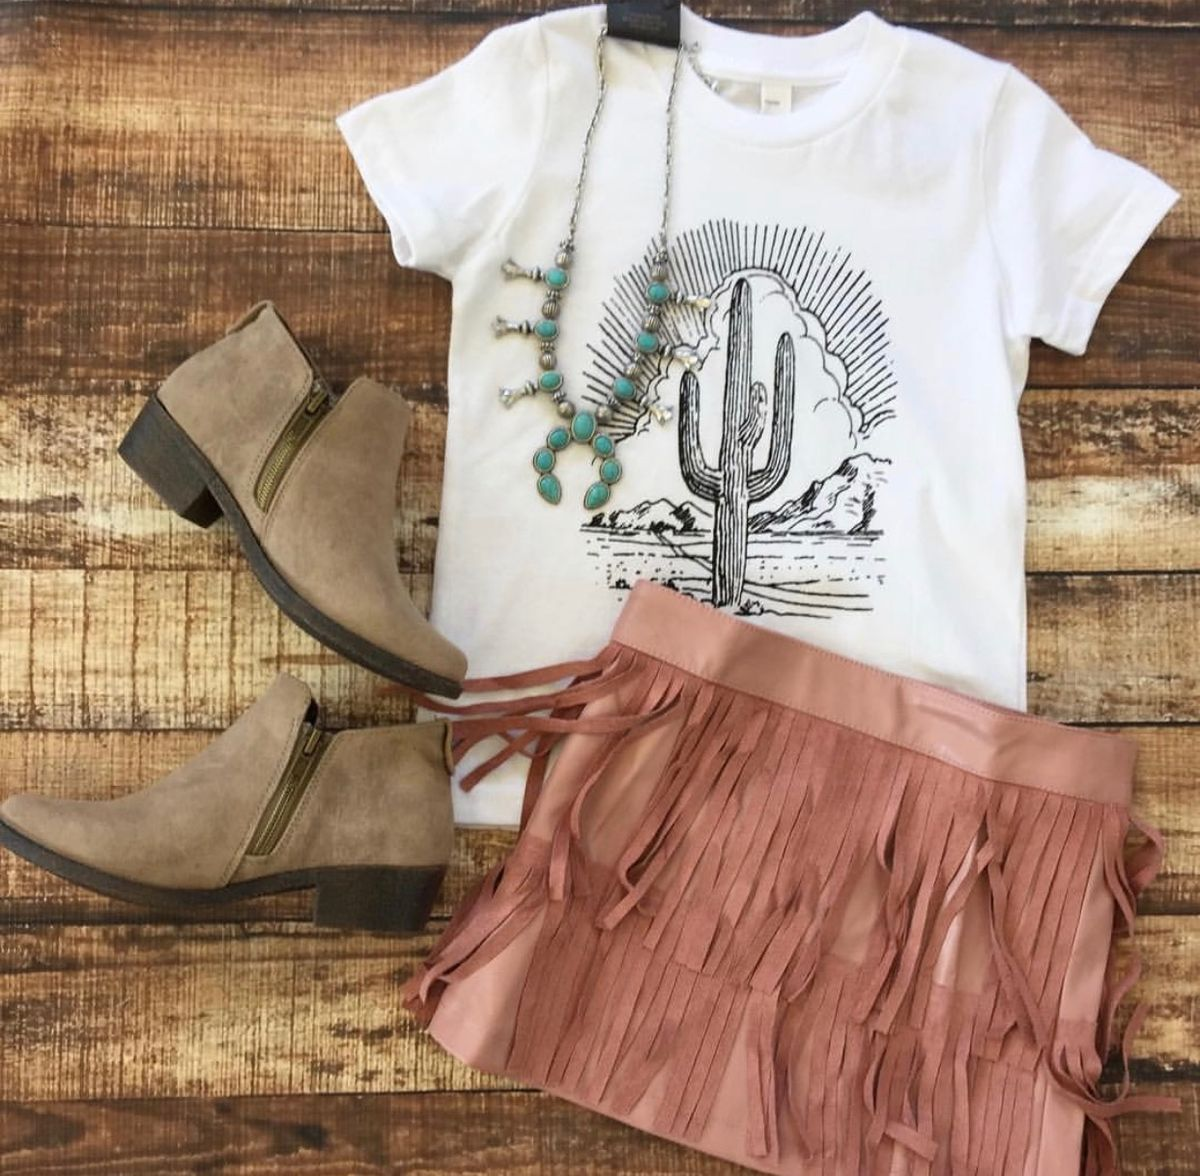 6fc69dce5f6a200193dedd497fc22cc3 - Summer vacations in Missouri 10 best outfits to wear